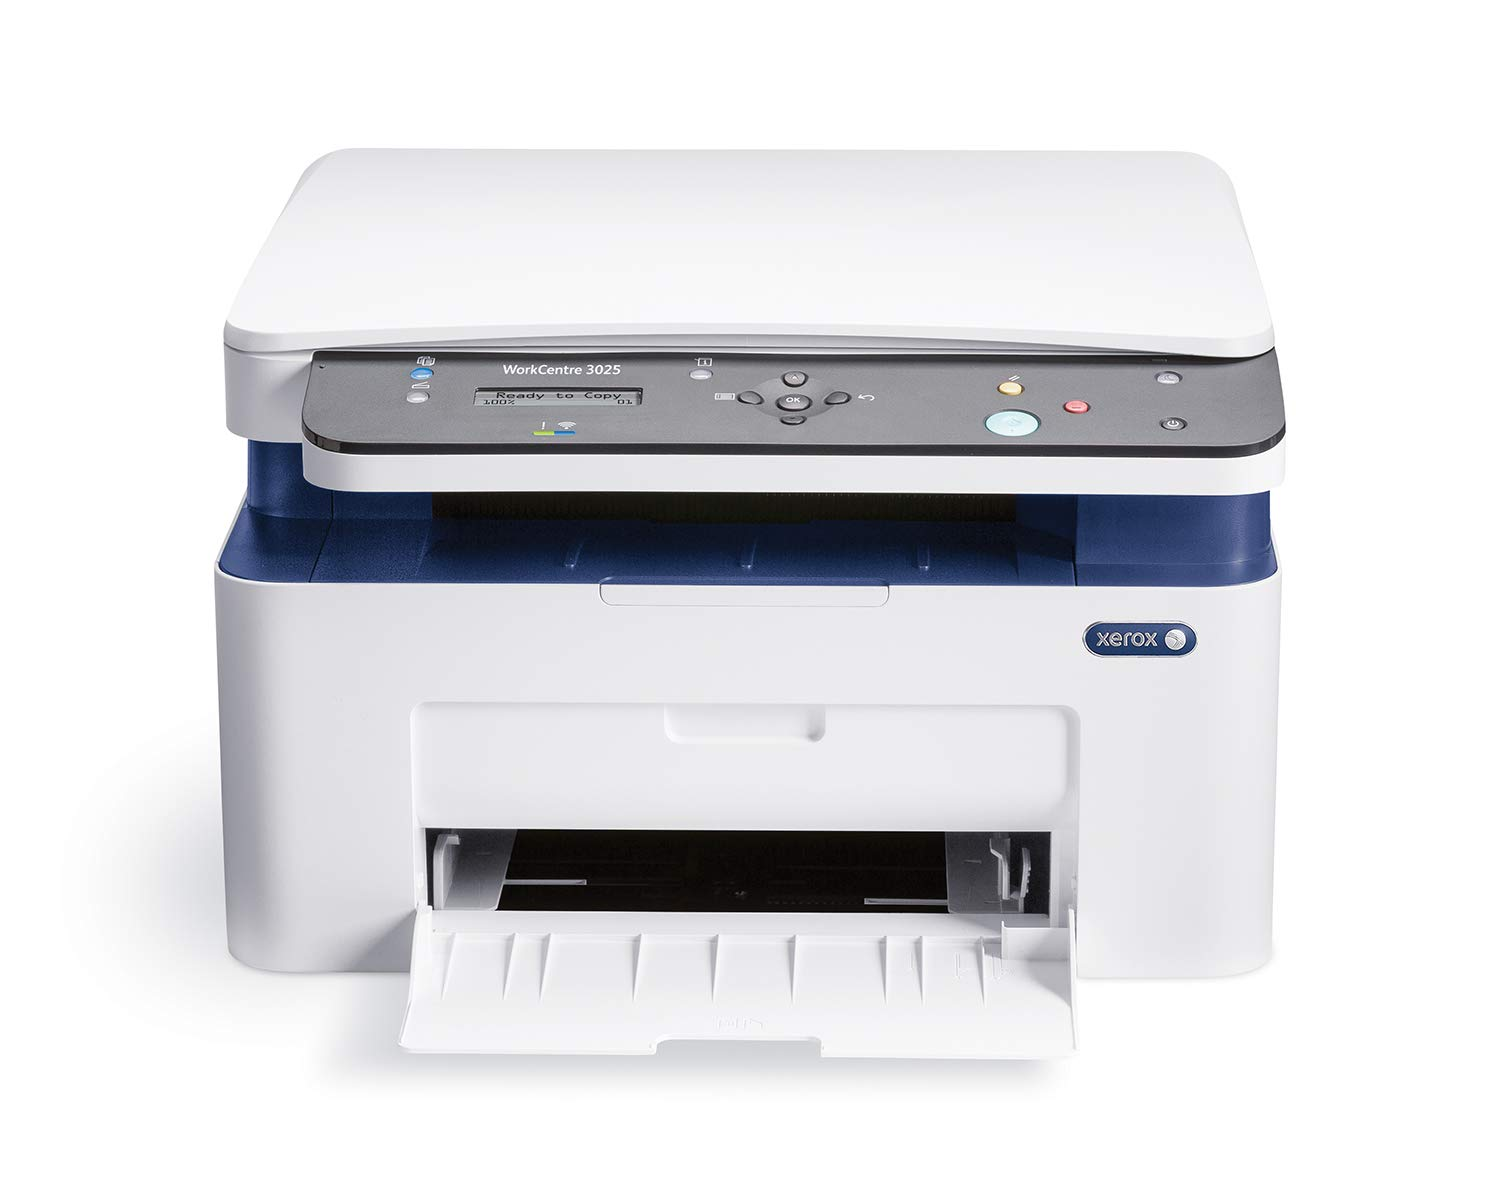 Amazon.in: Buy Xerox Work Centre 3025V_BI Multi-Function Wireless Printer  Online at Low Prices in India | Xerox Reviews & Ratings